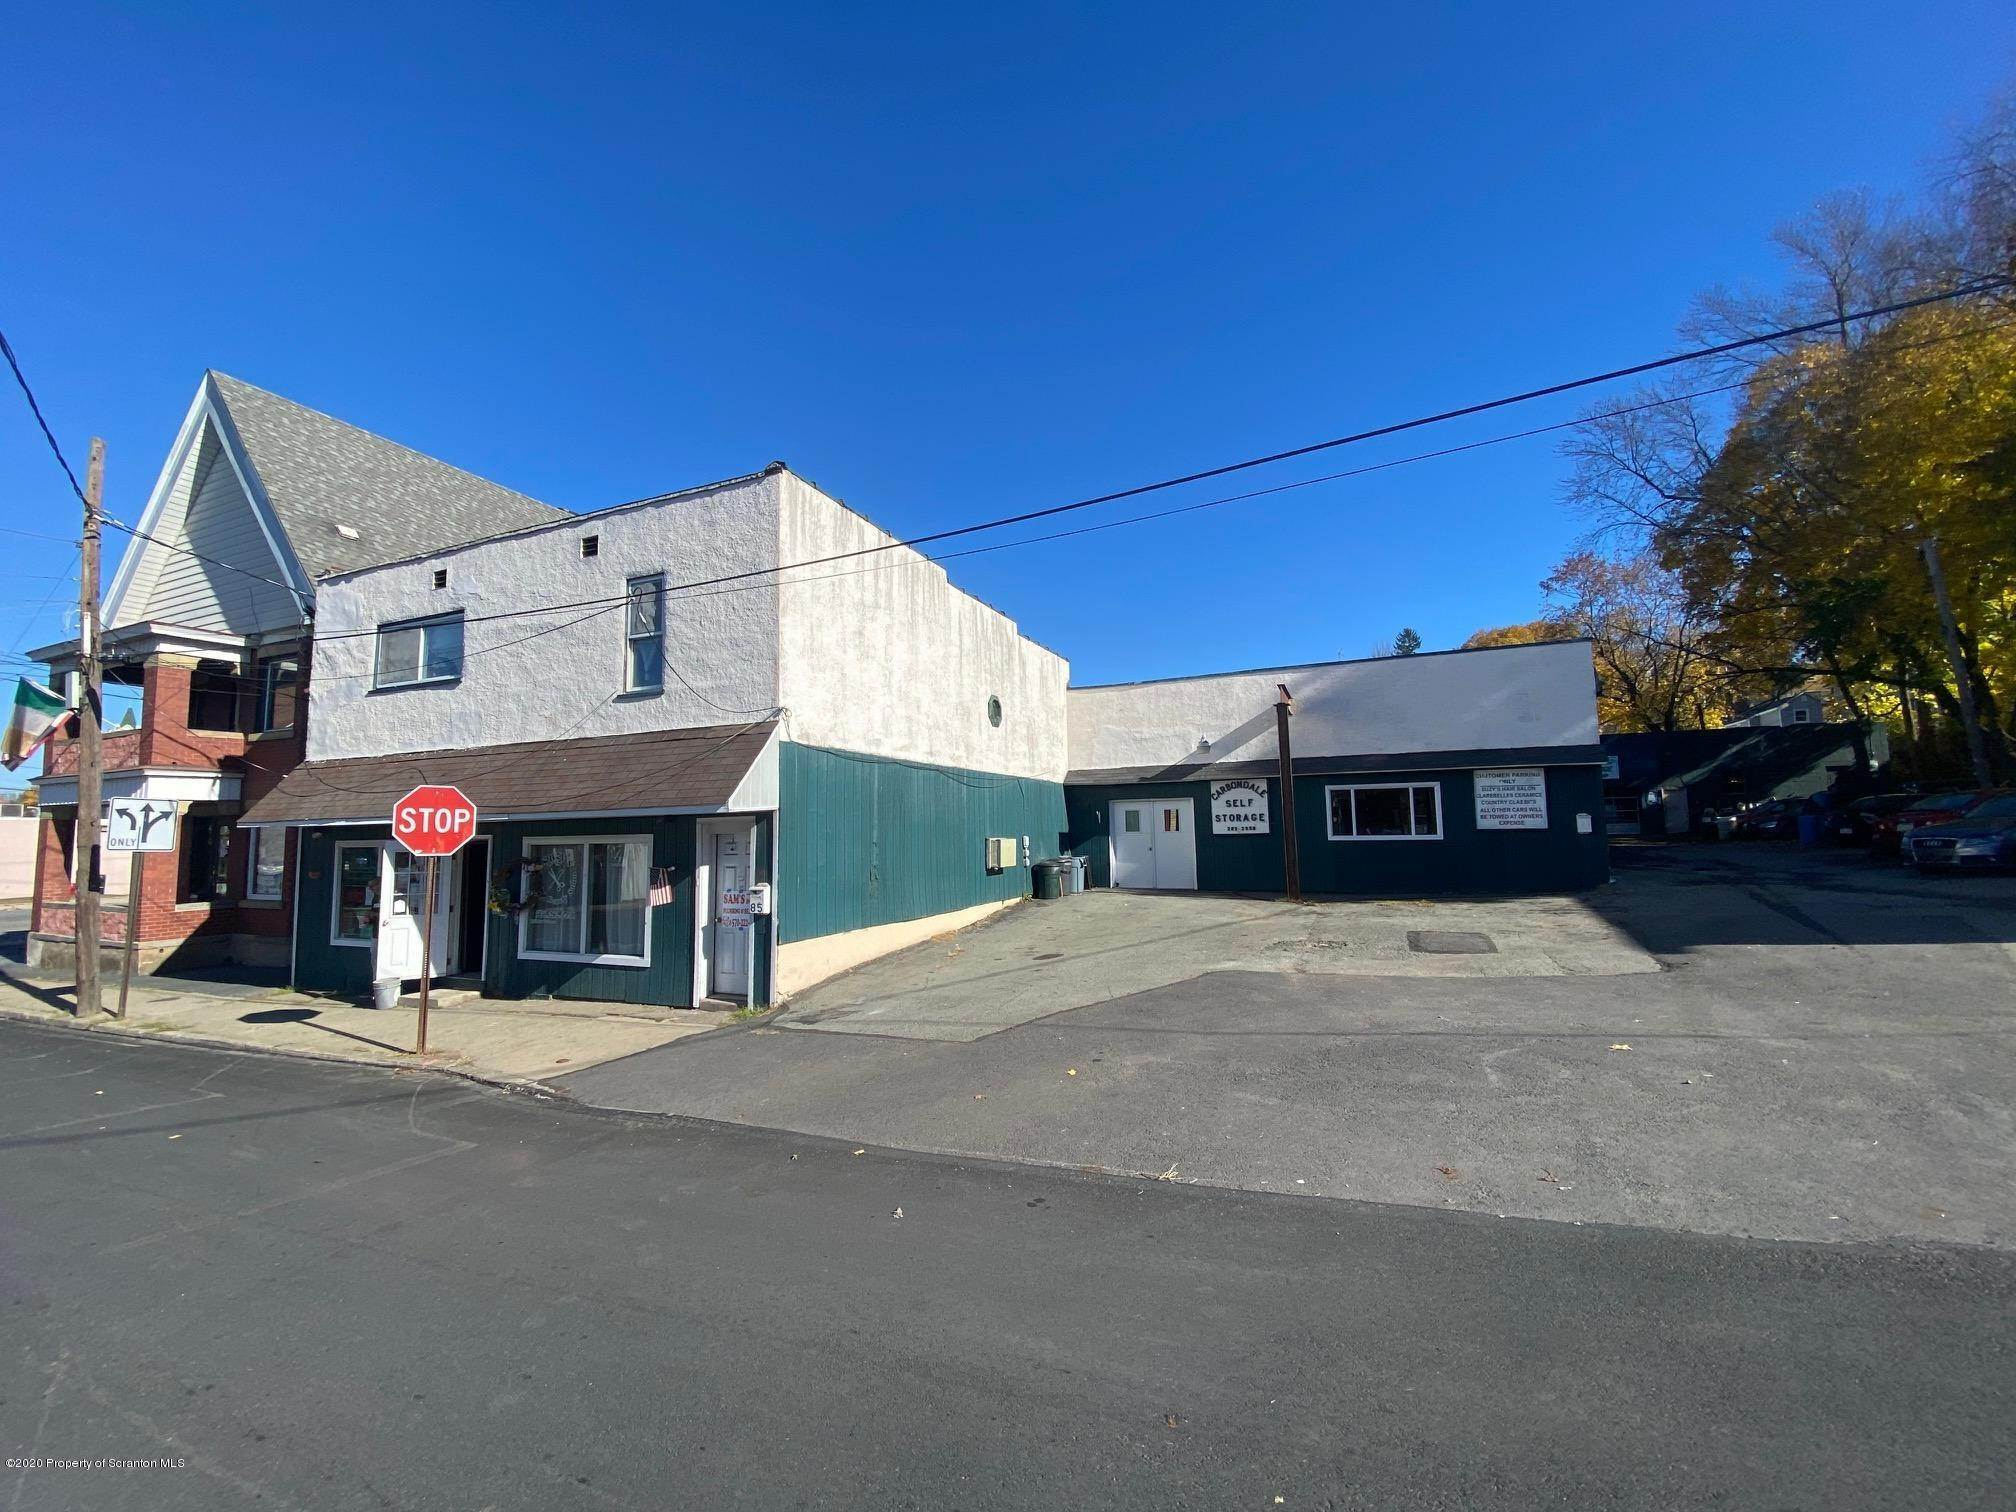 Property for Sale at 85 Main St Carbondale, Pennsylvania 18407 United States